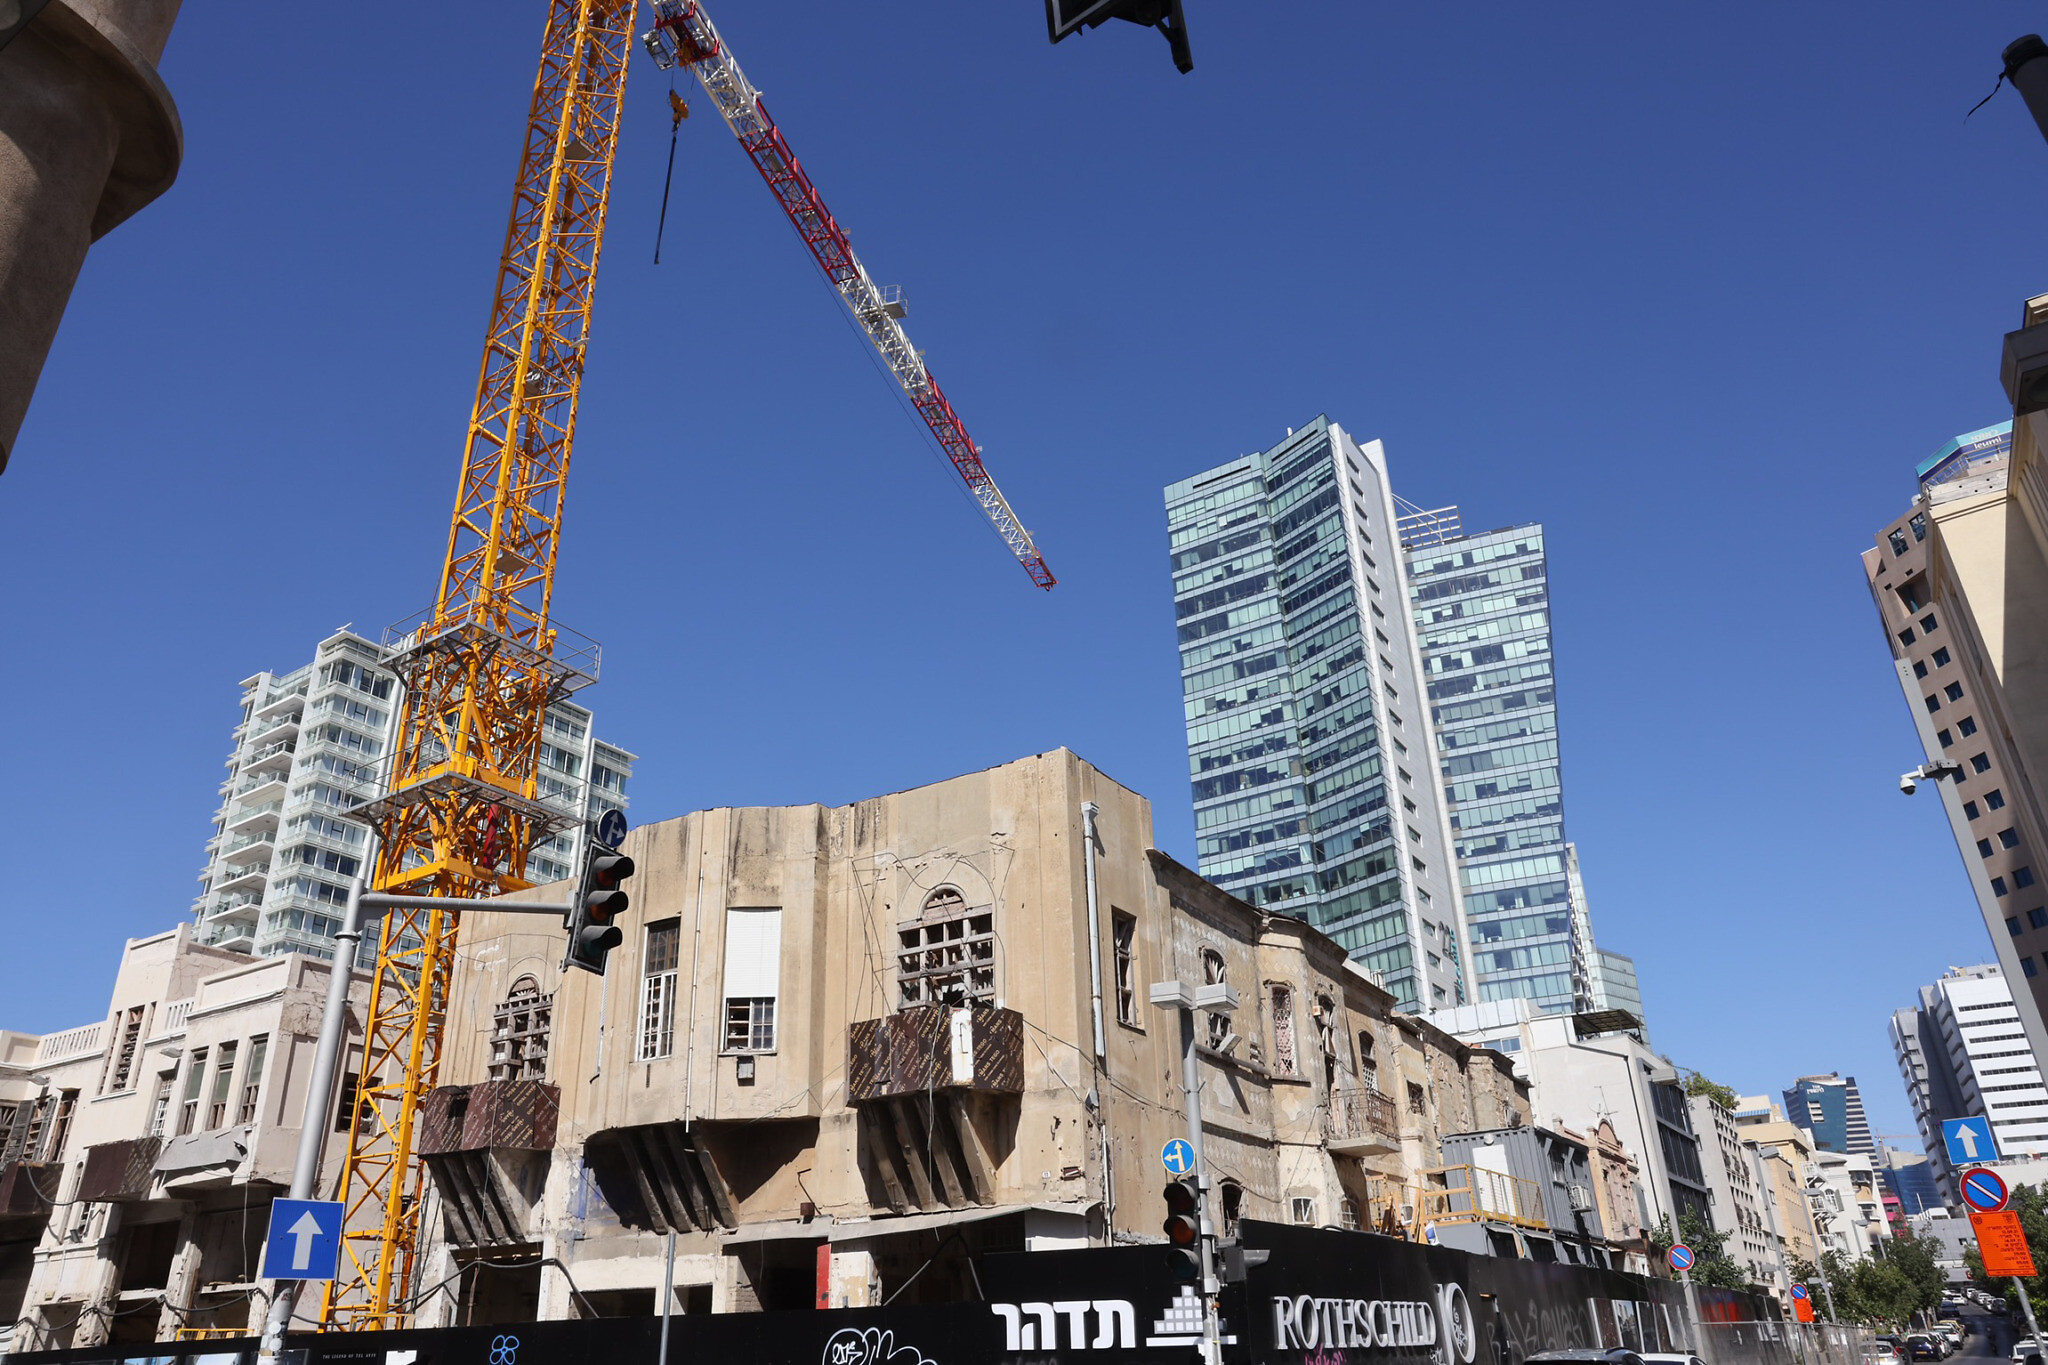 Old structures mix with luxury buildings around Rothschild Boulevard in Tel Aviv, September 8, 2021. (Nati Shohat/FLASH90)